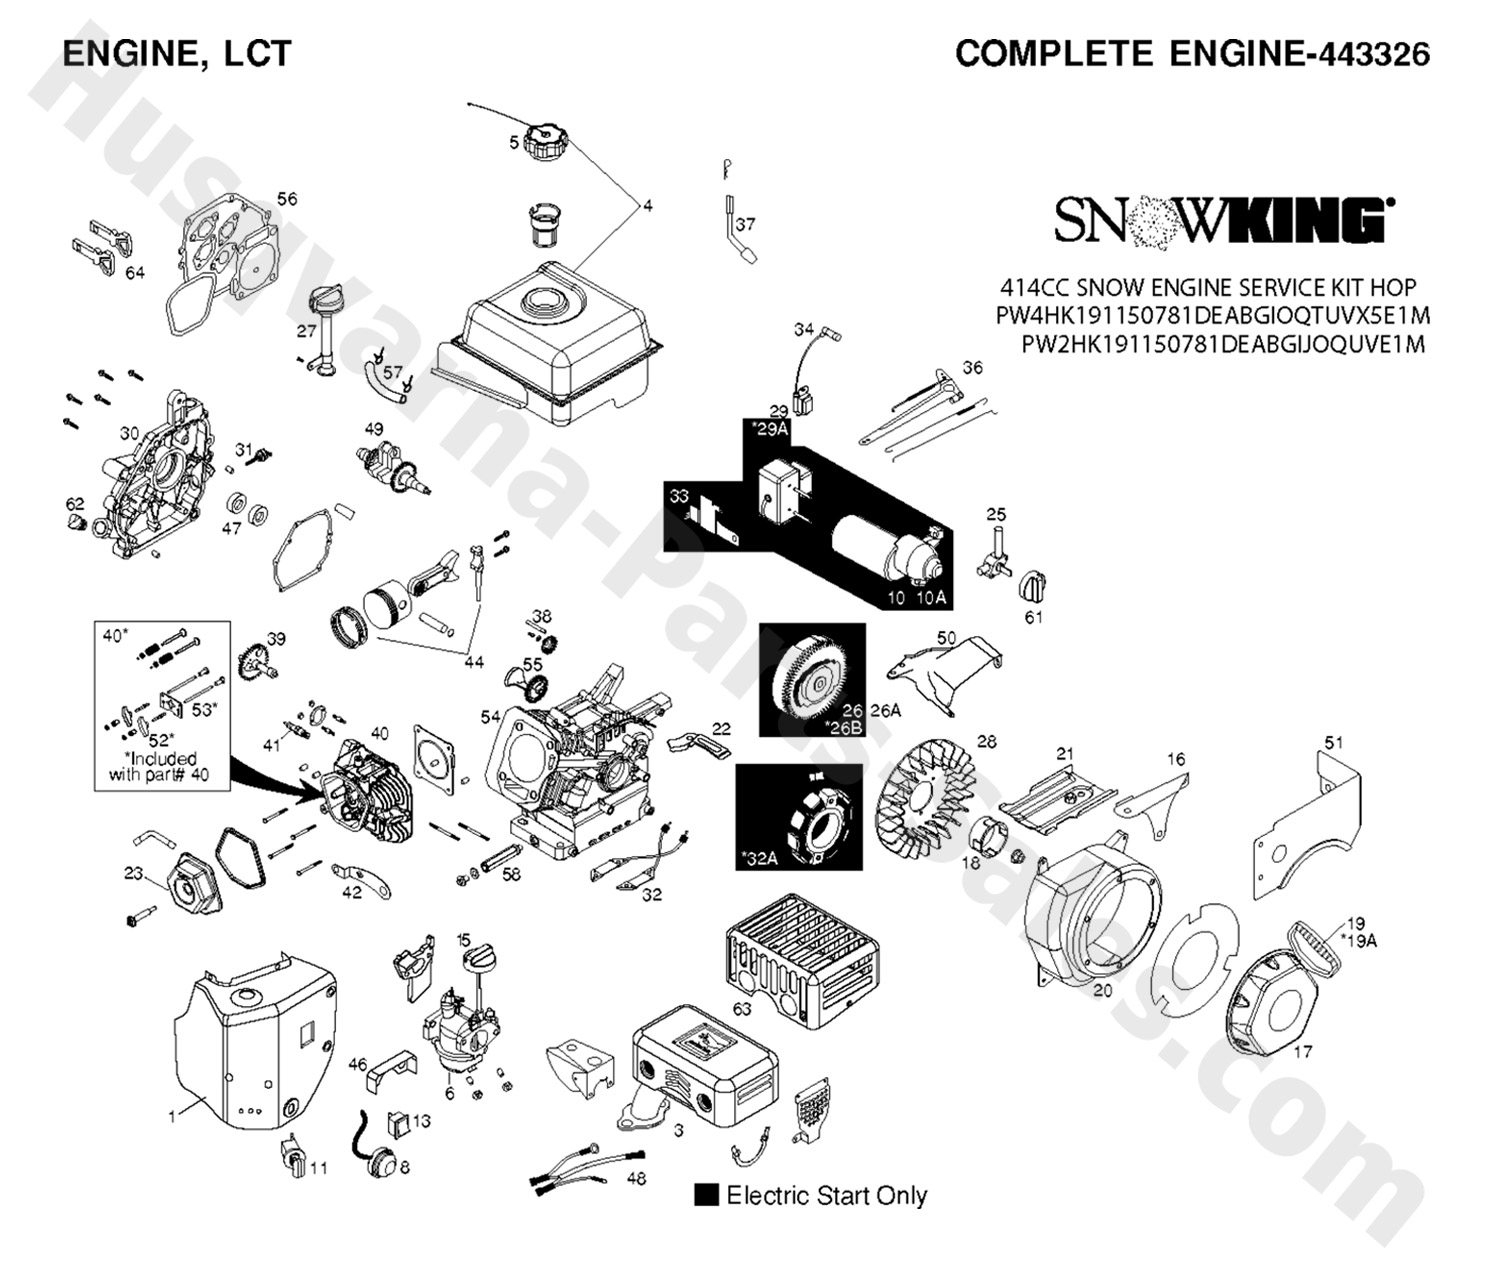 1830 Exl Husqvarna Snow Thrower Engine Parts